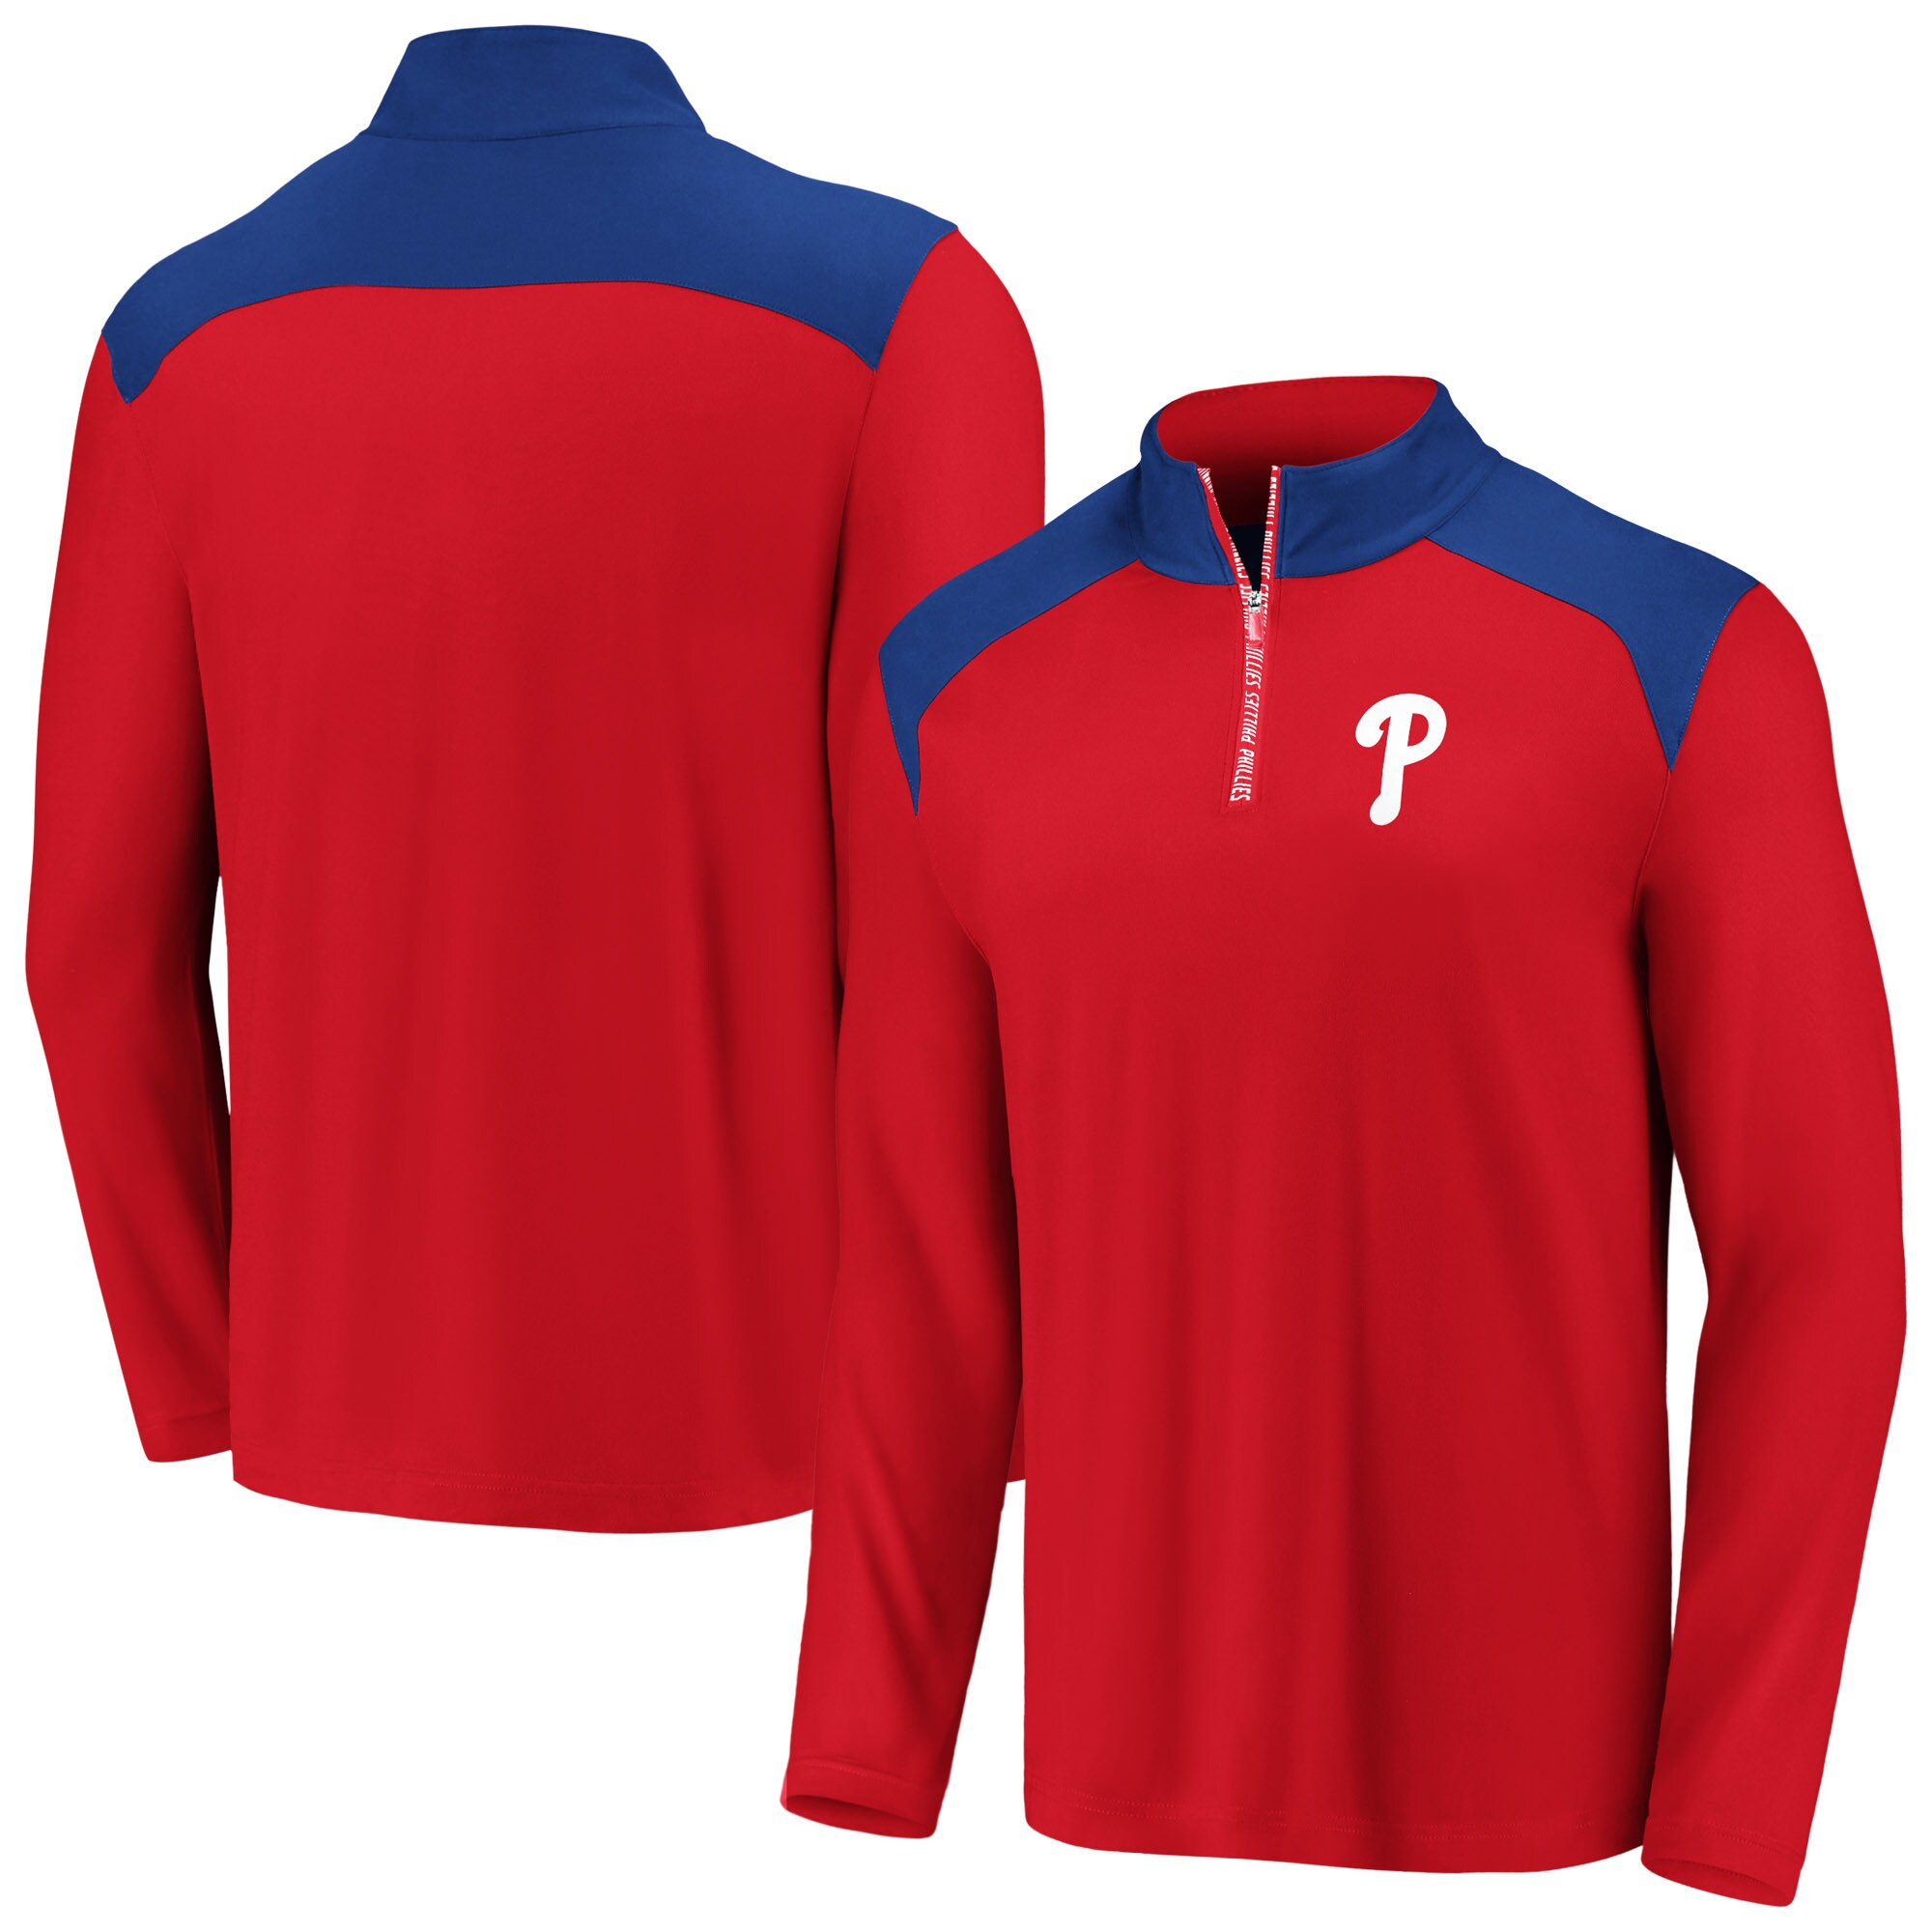 Philadelphia Phillies Fanatics Branded Iconic Clutch Quarter-Zip Pullover Jacket - Red/Royal